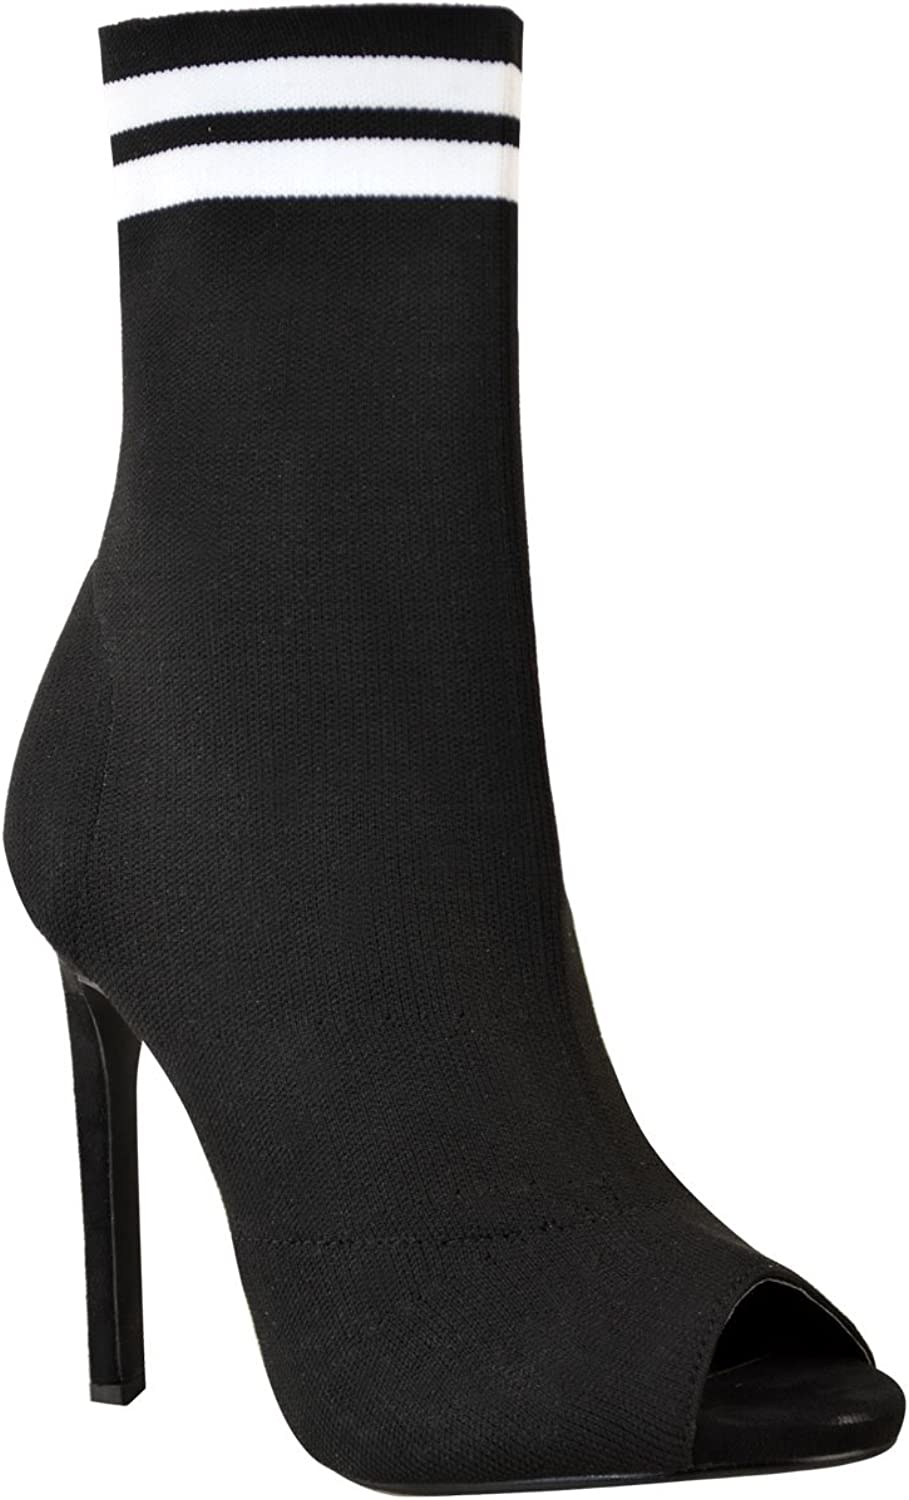 Fashion Thirsty Womens Stiletto High Heel Sock Boots Knit Stretch Sports Luxe Size